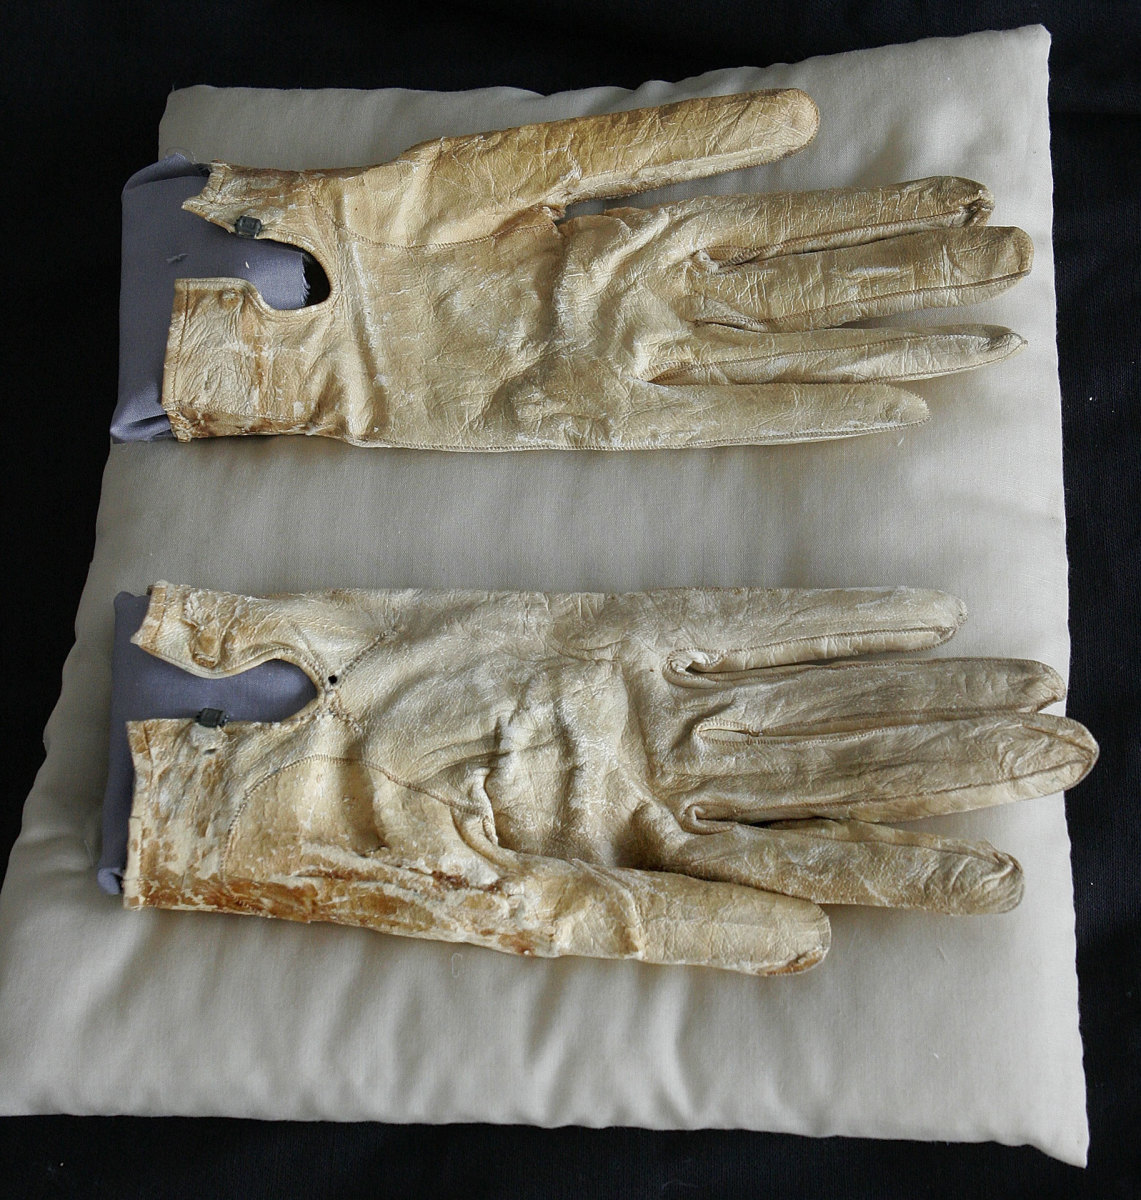 Abraham Lincoln's bloodstained gloves he carried on the night of his death at the Abraham Lincoln Presidential Library and Museum in Springfield, Illinois.